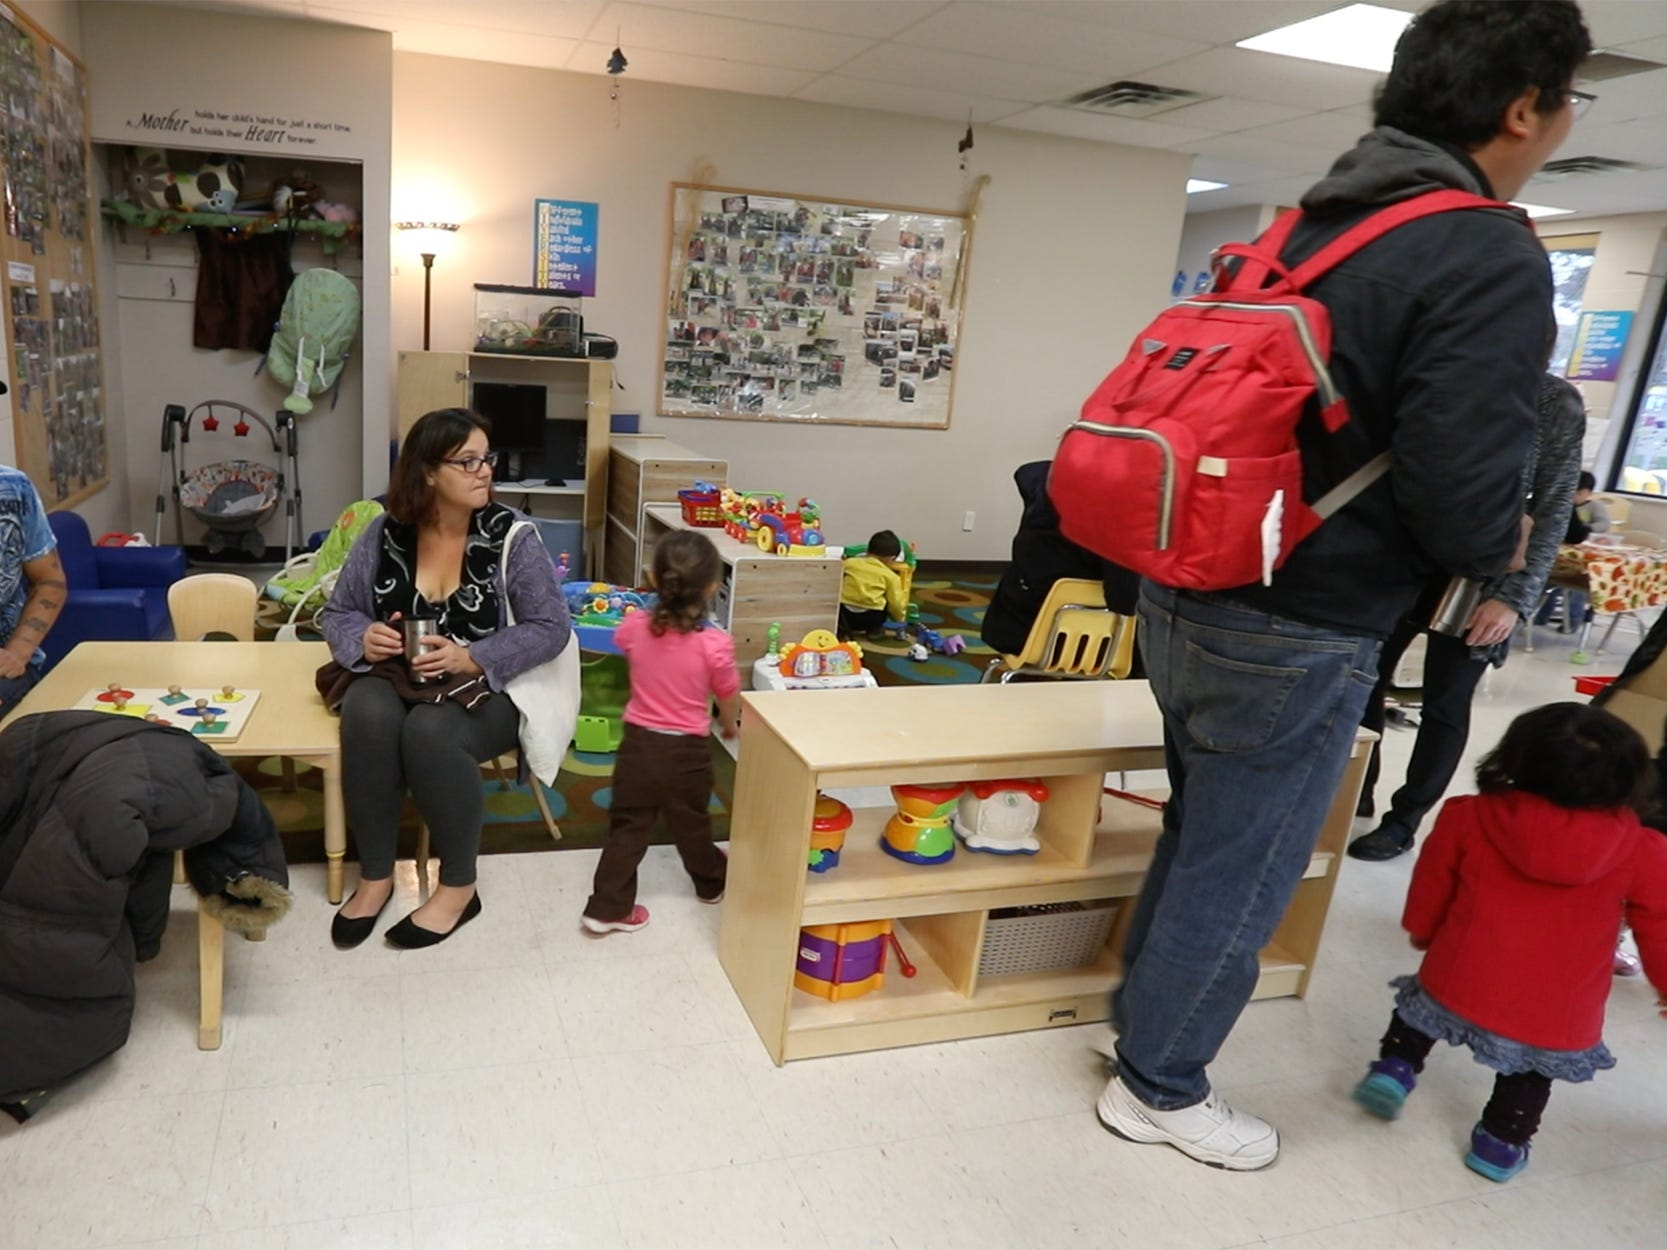 Mark and Florence Carter watch as several children congregate near the painting area as their daughter, Renay, 2, wanders towards another play area.  The program is not income based it is open to all people.